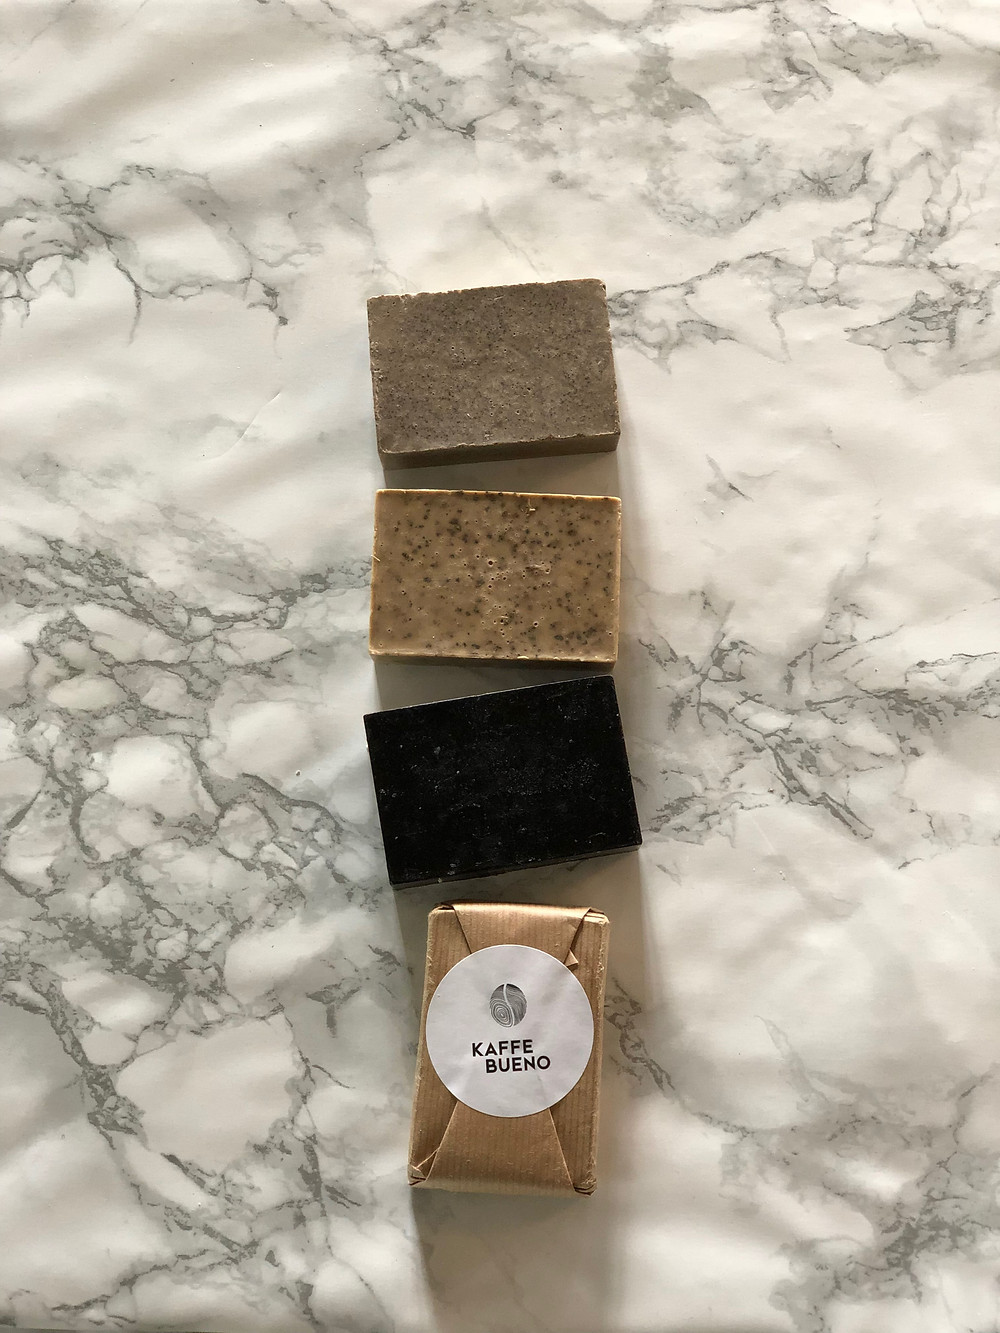 Back2Life Upcycled Coffee Soaps - using recycled coffee grounds